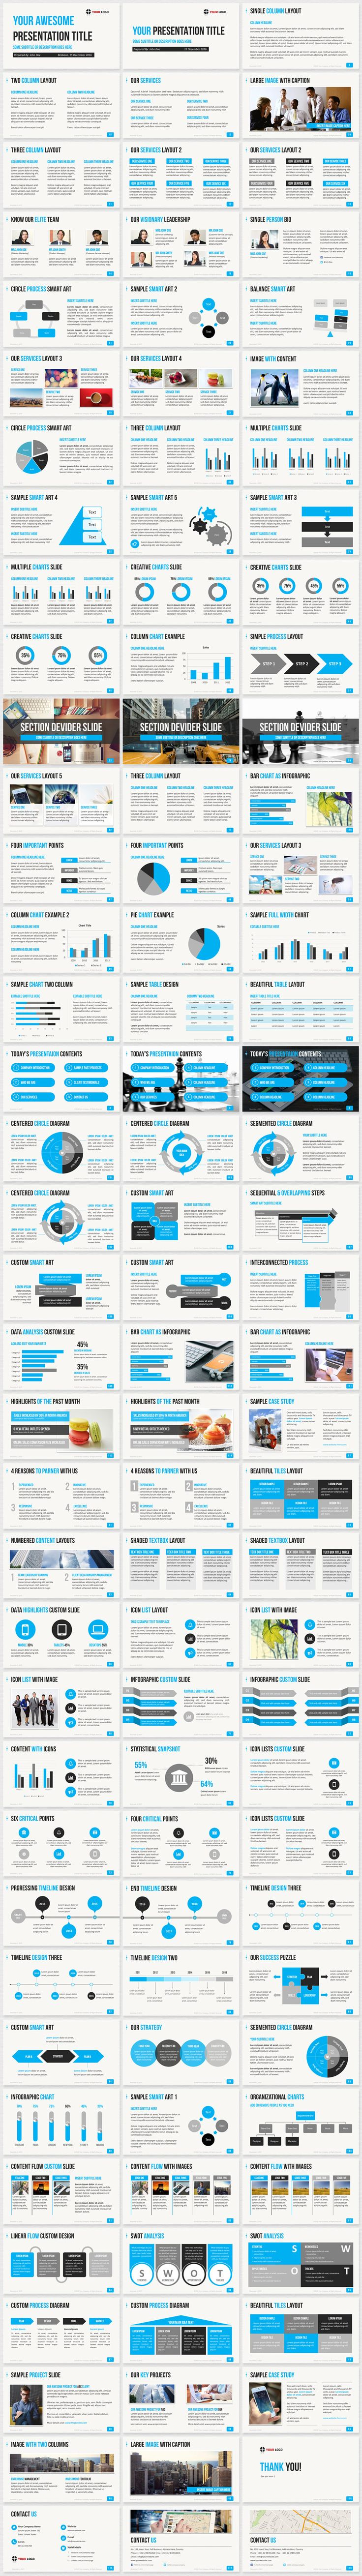 Professional business PowerPoint templates with high-quality template slide layouts. Download 6 color themes to create a clean PowerPoint presentation fast.